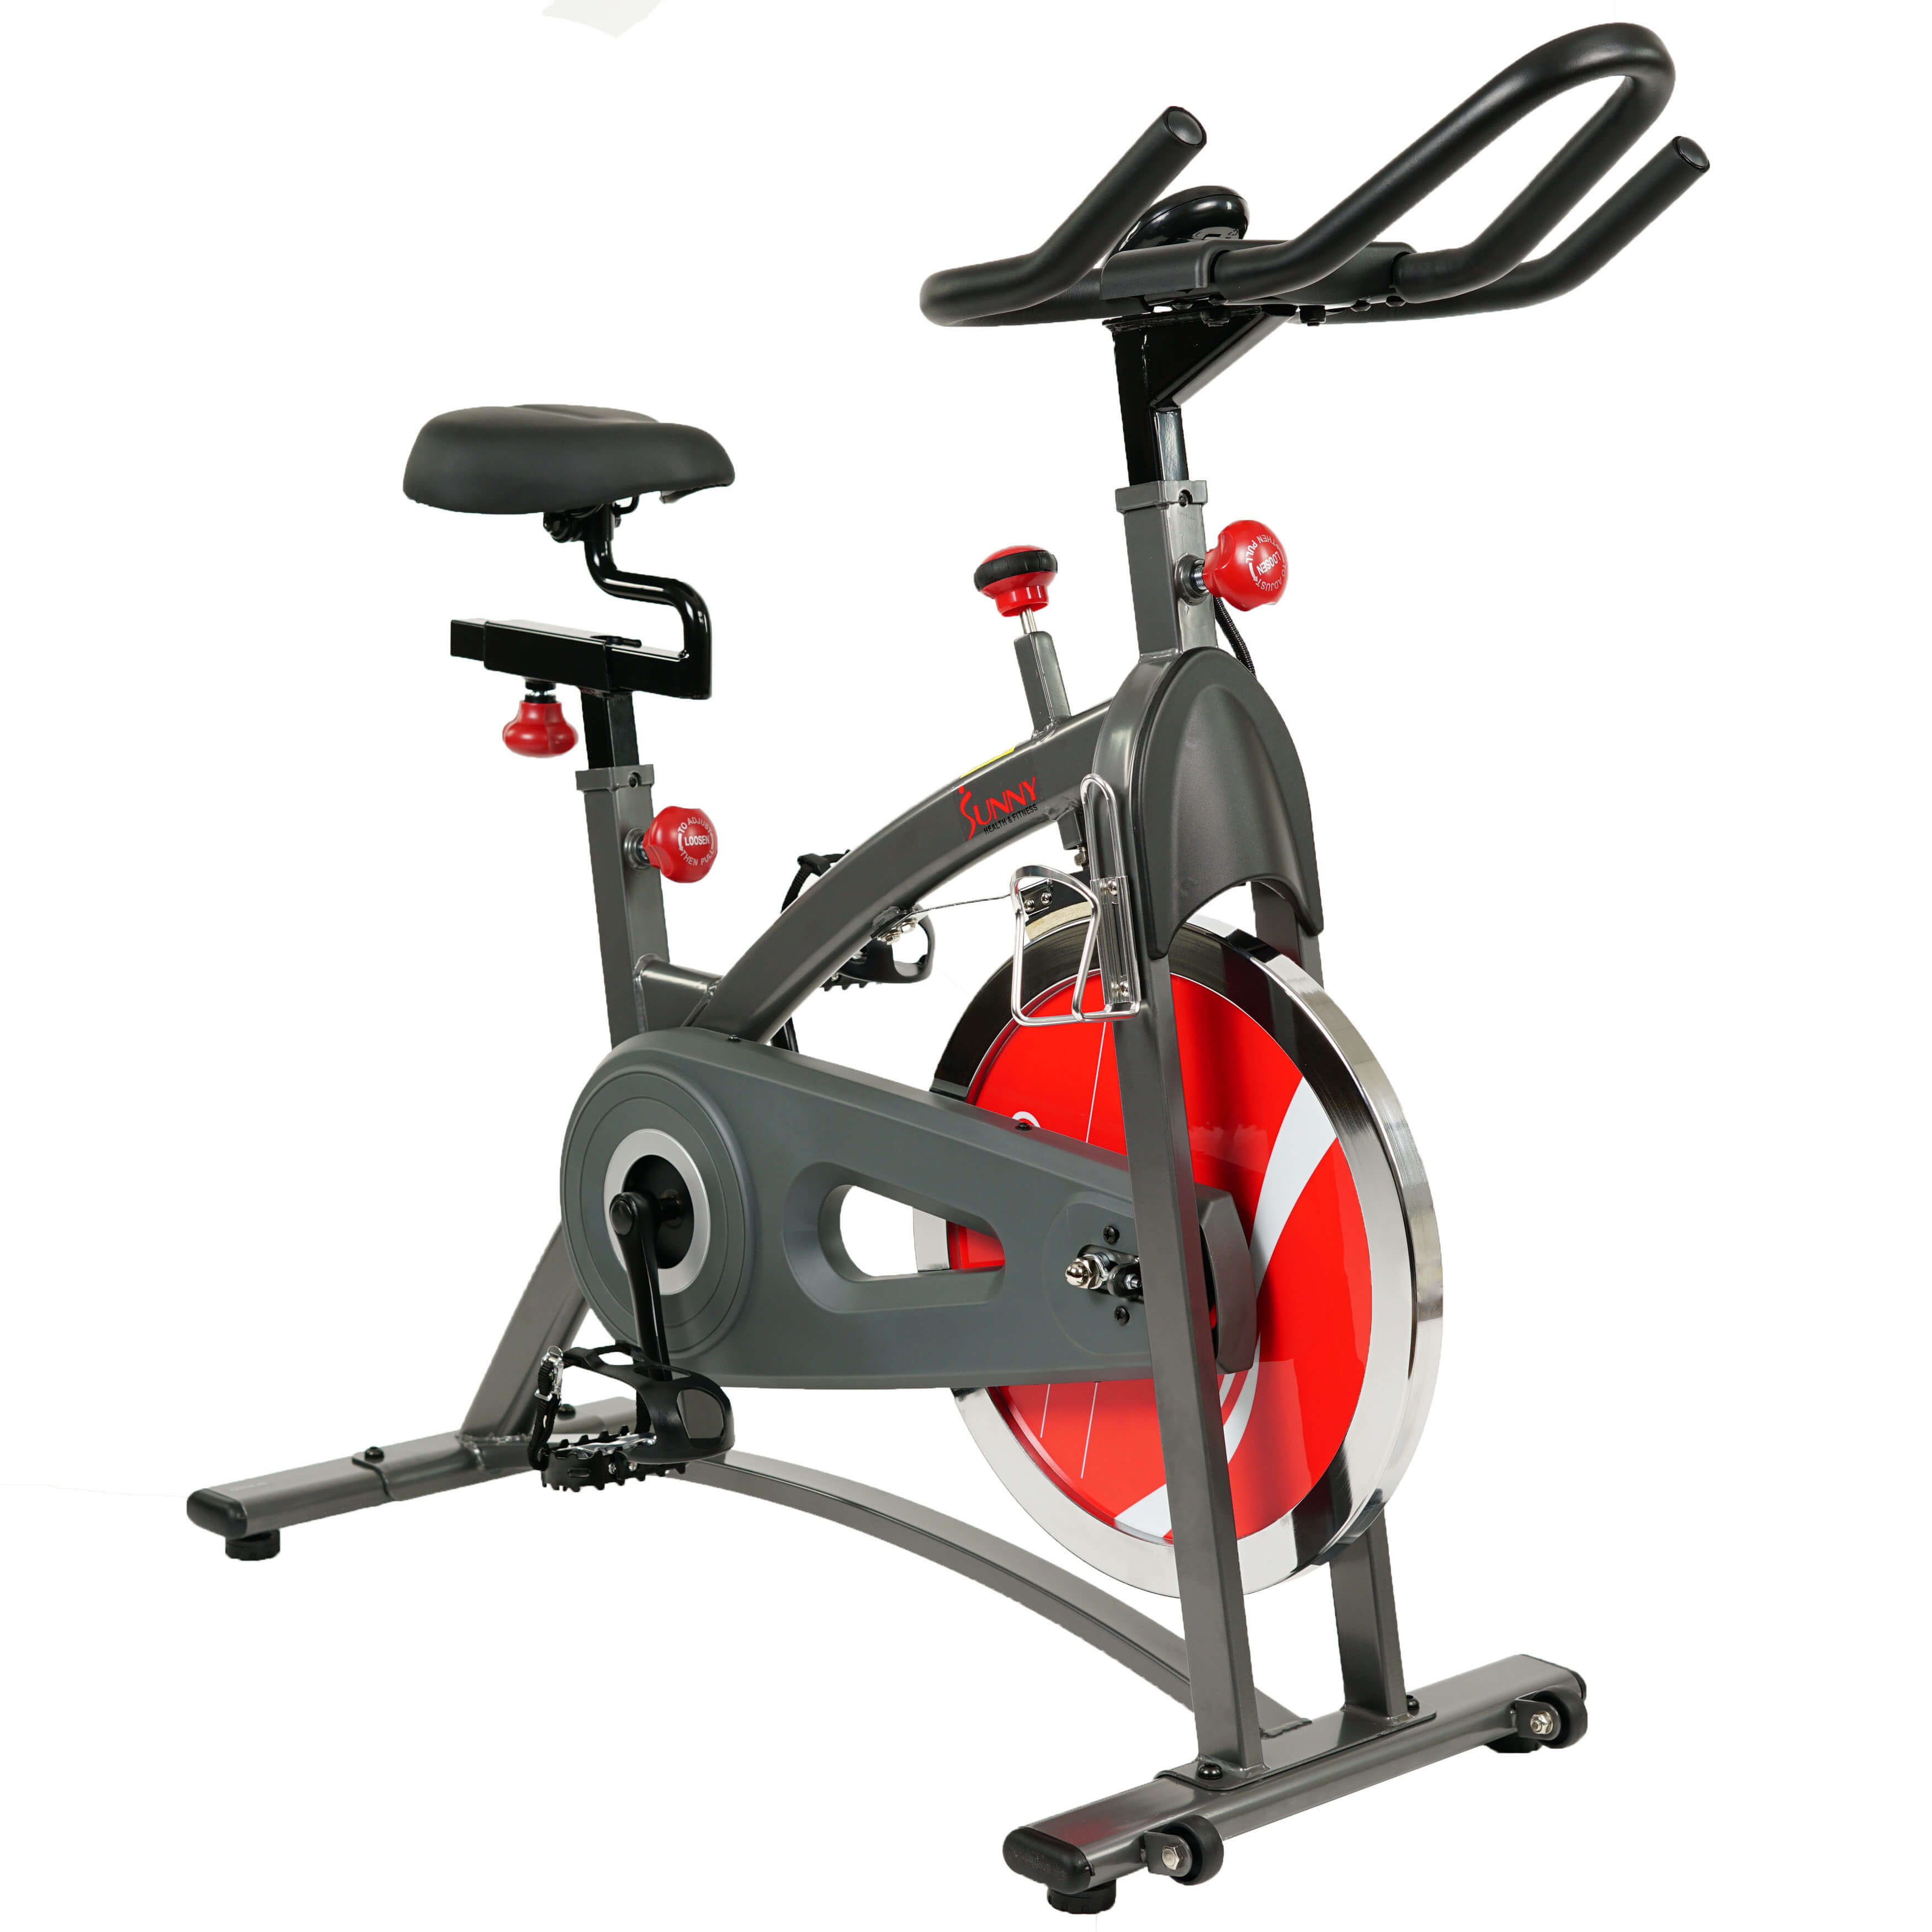 Sunny Health & Fitness SF-B1423 Indoor Cycling Exercise Bike, Belt